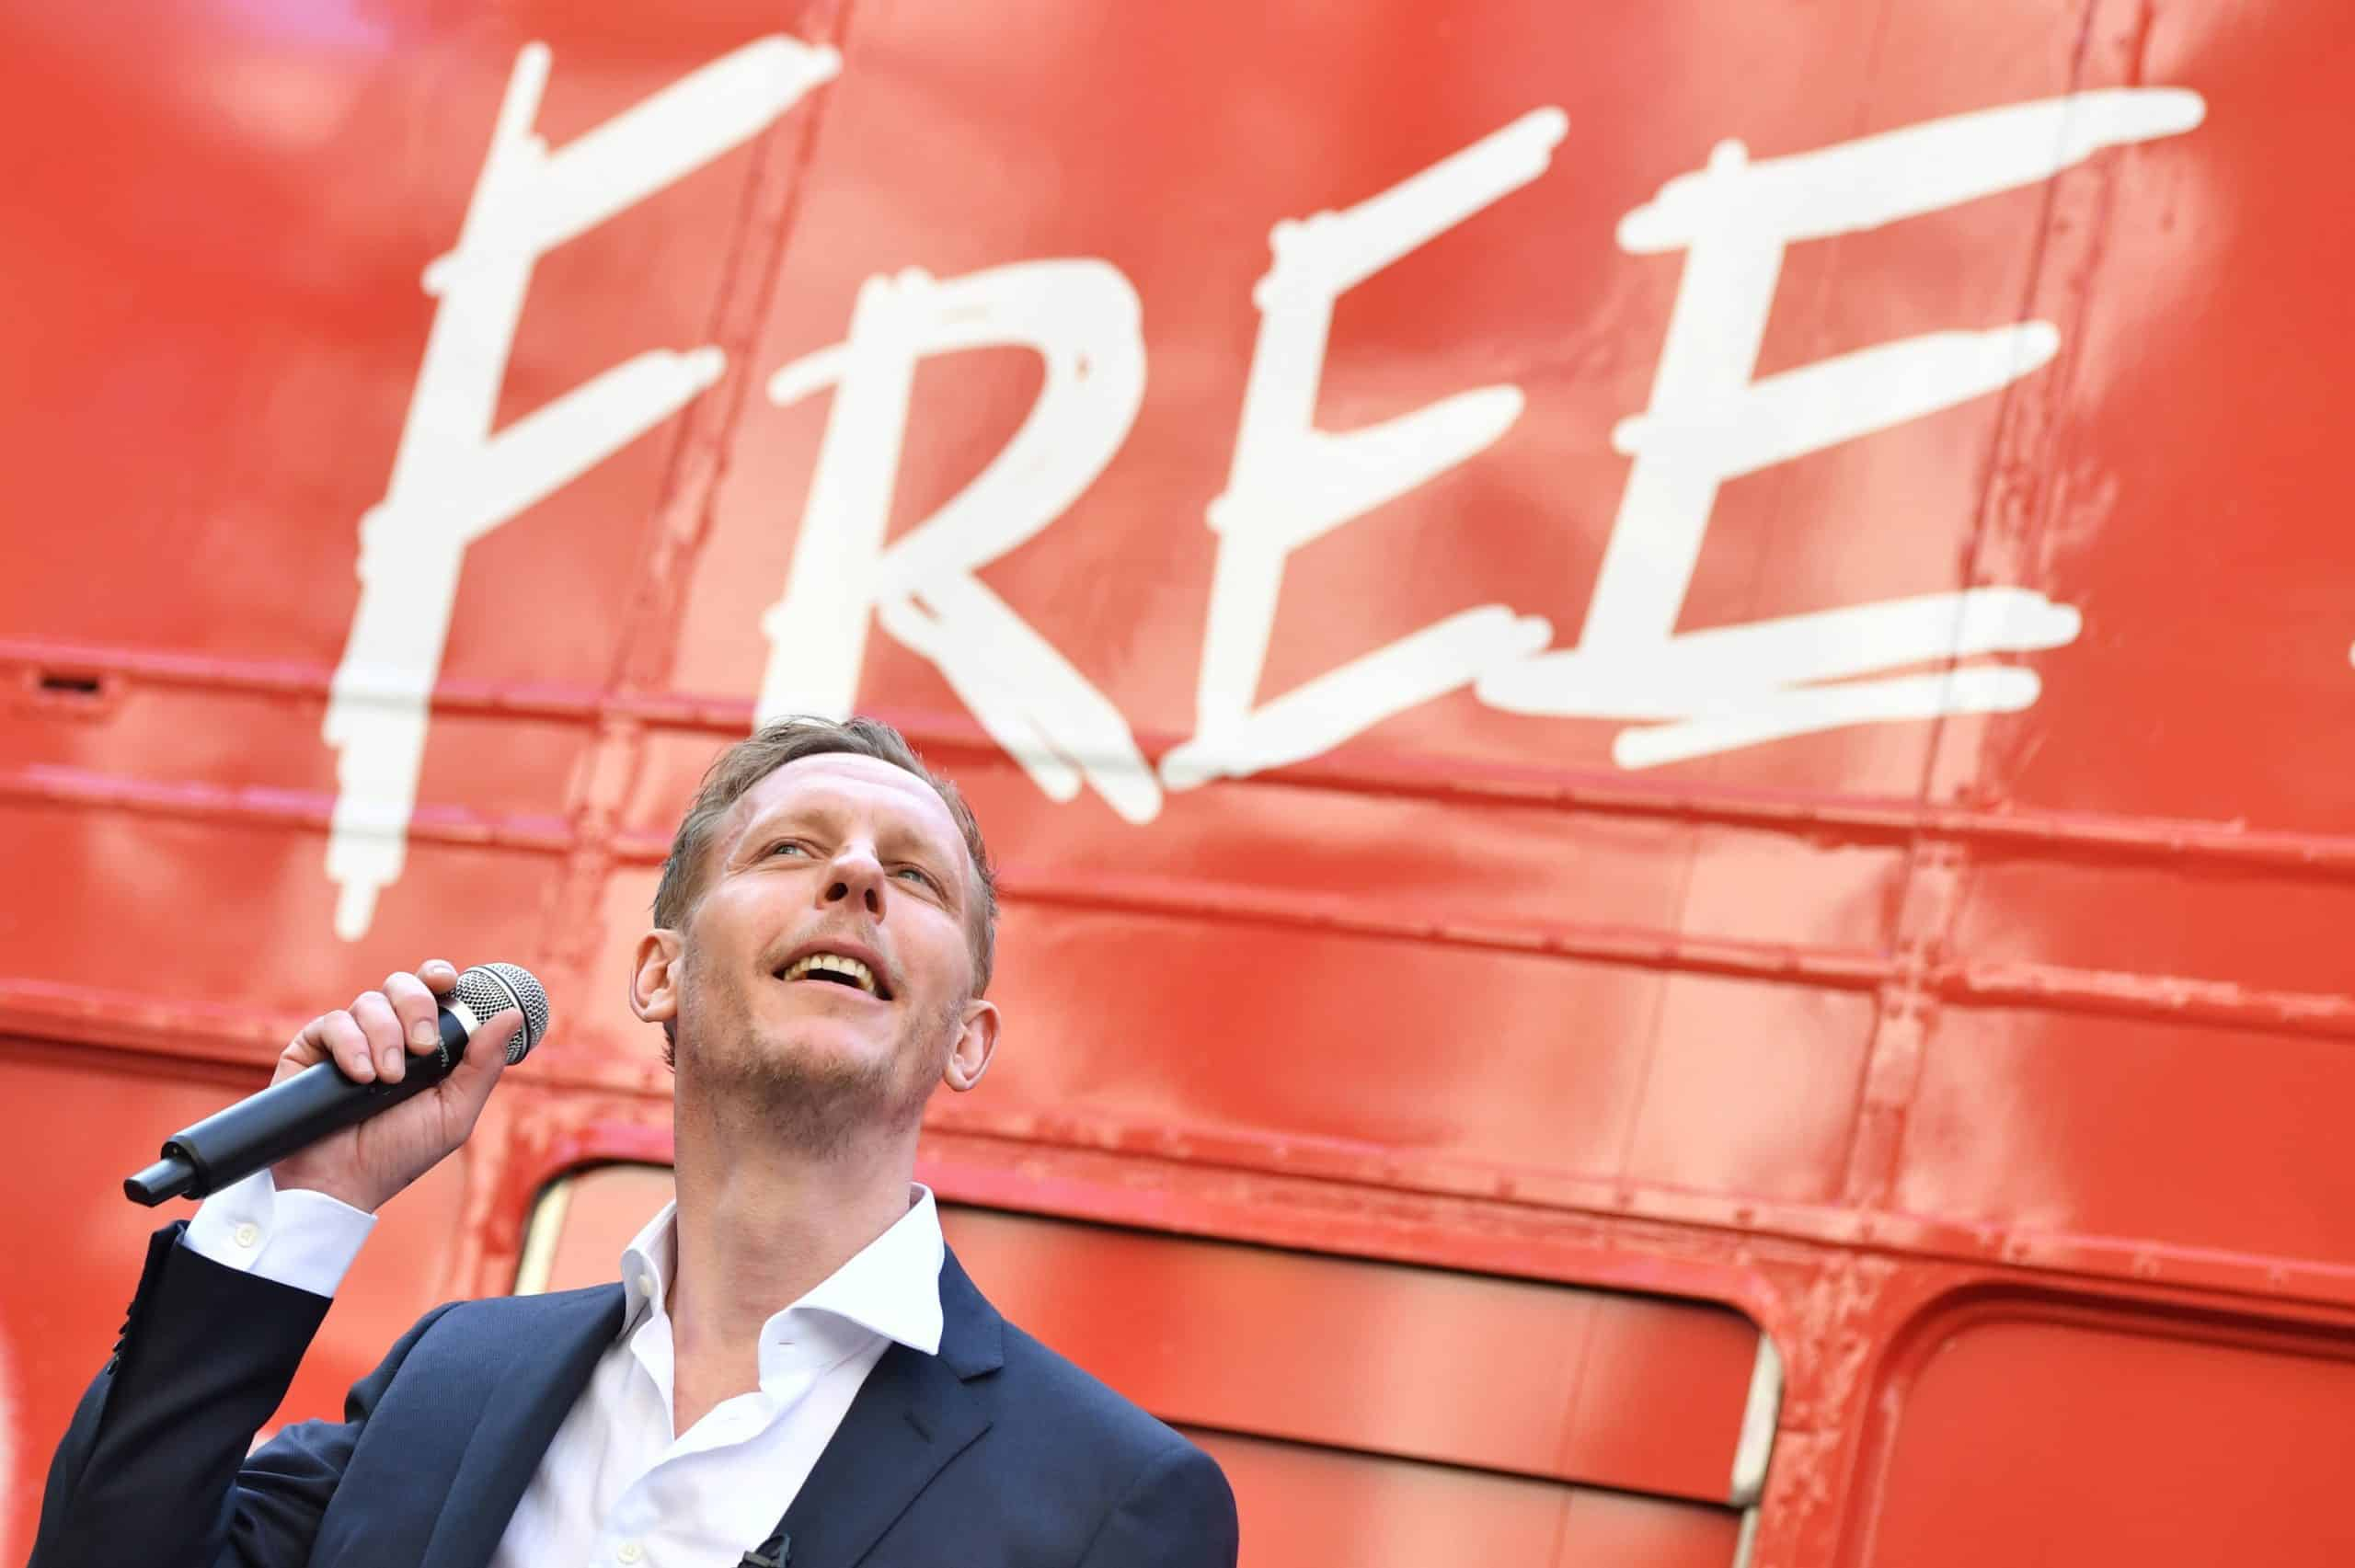 Laurence Fox loses his head after discovering Pride traffic lights in London